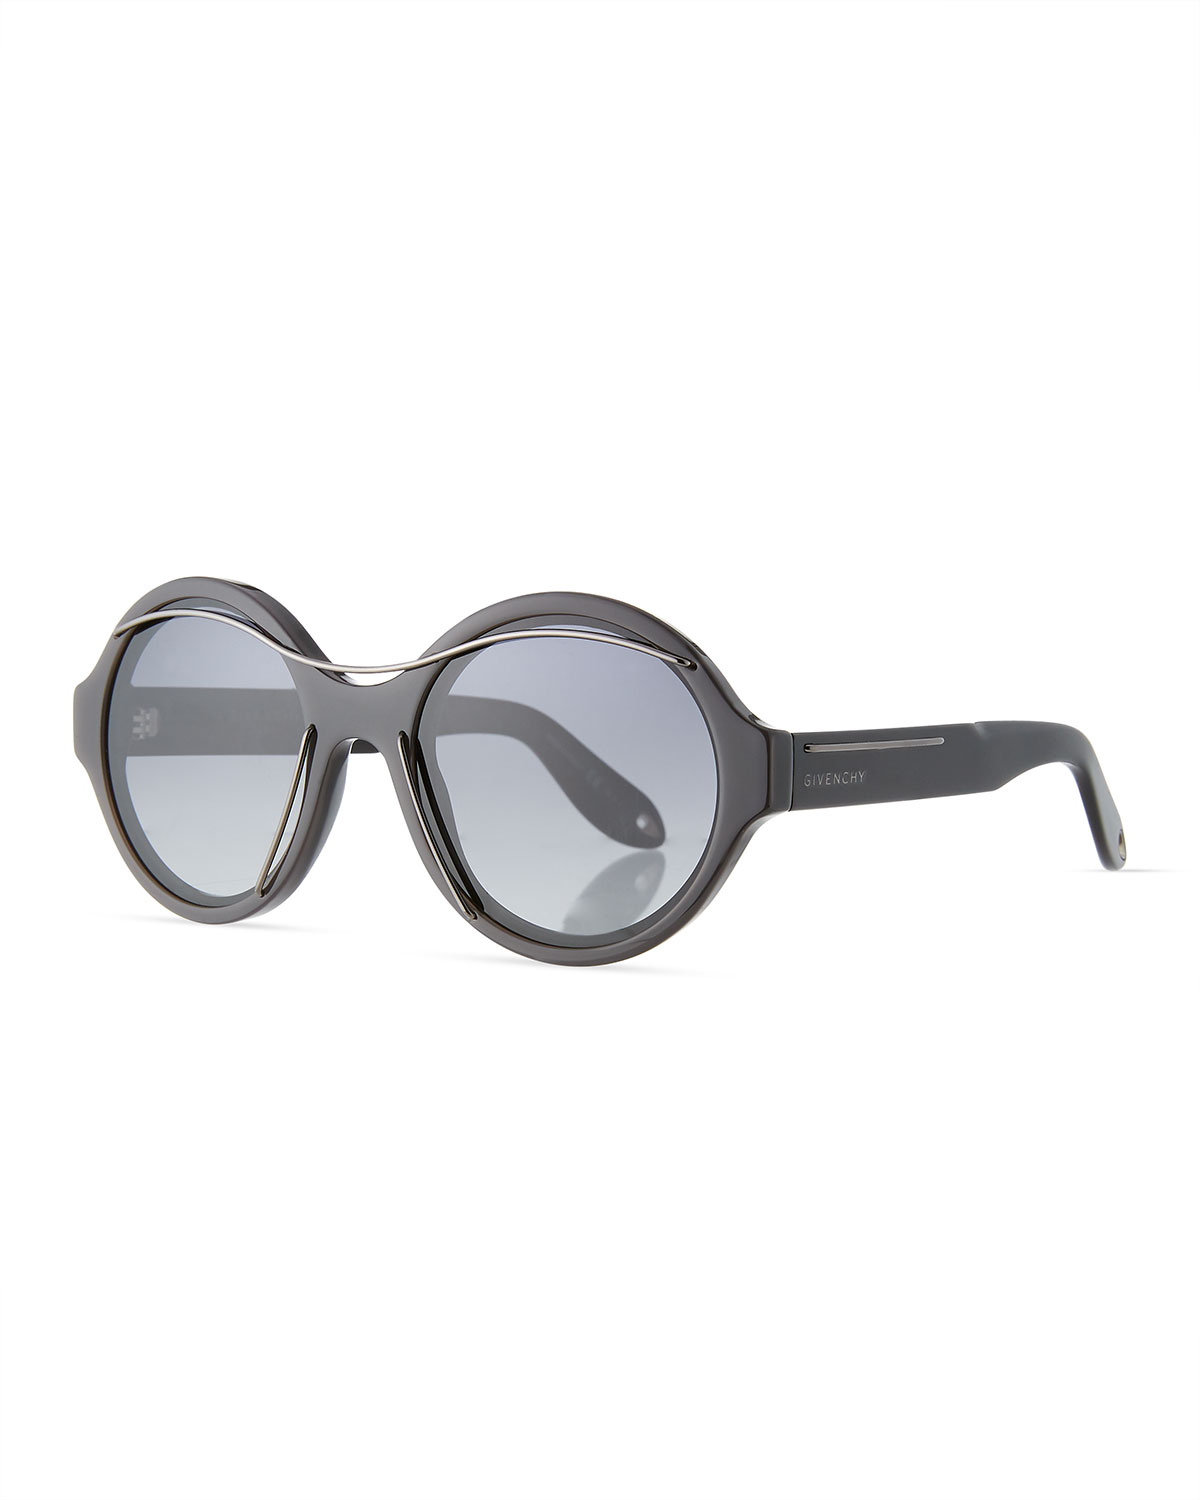 84c8b7d08b Givenchy Round Acetate Sunglasses w Metal Wires